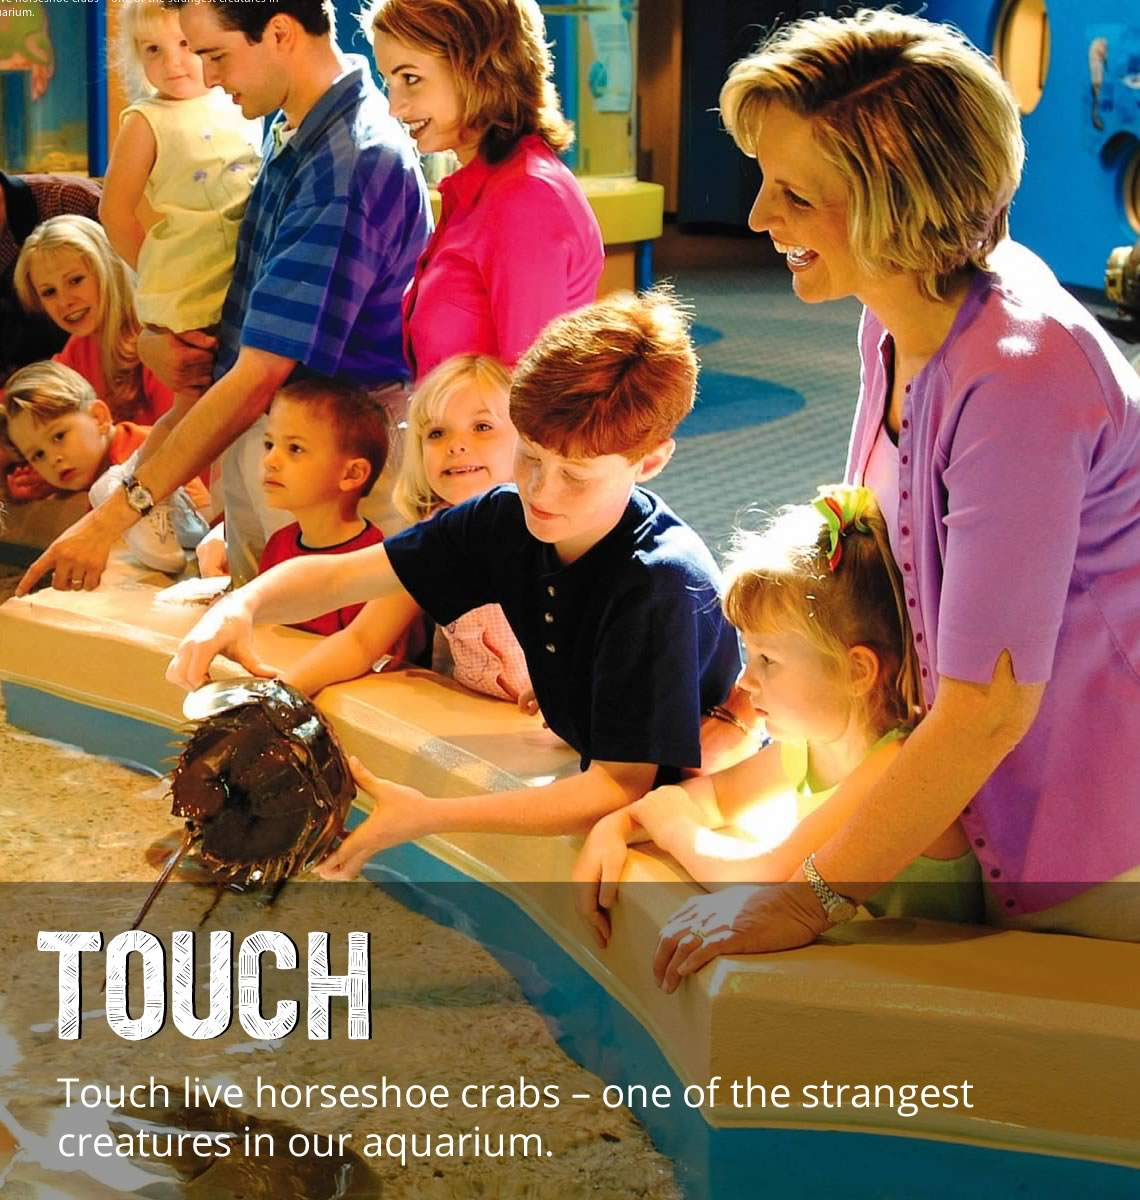 Discovery Center - Touch